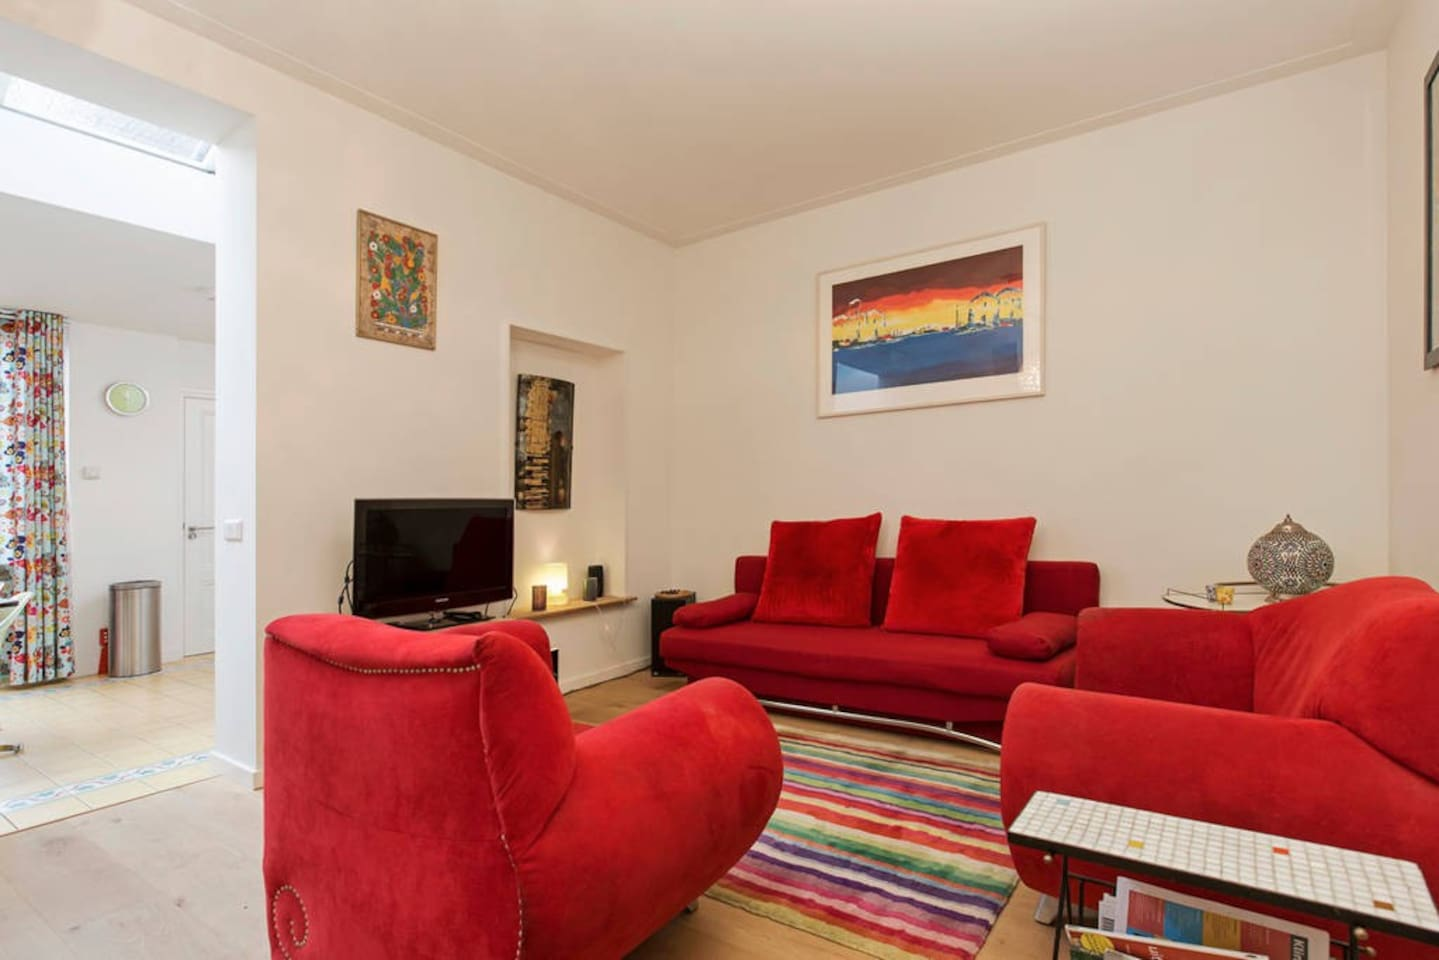 Welcome in our appartment with free parking in the centre of Utrecht! The spacious living room gives a vieuw on the open kitchen and garden on the waterfront of the famous canals in Utrecht!